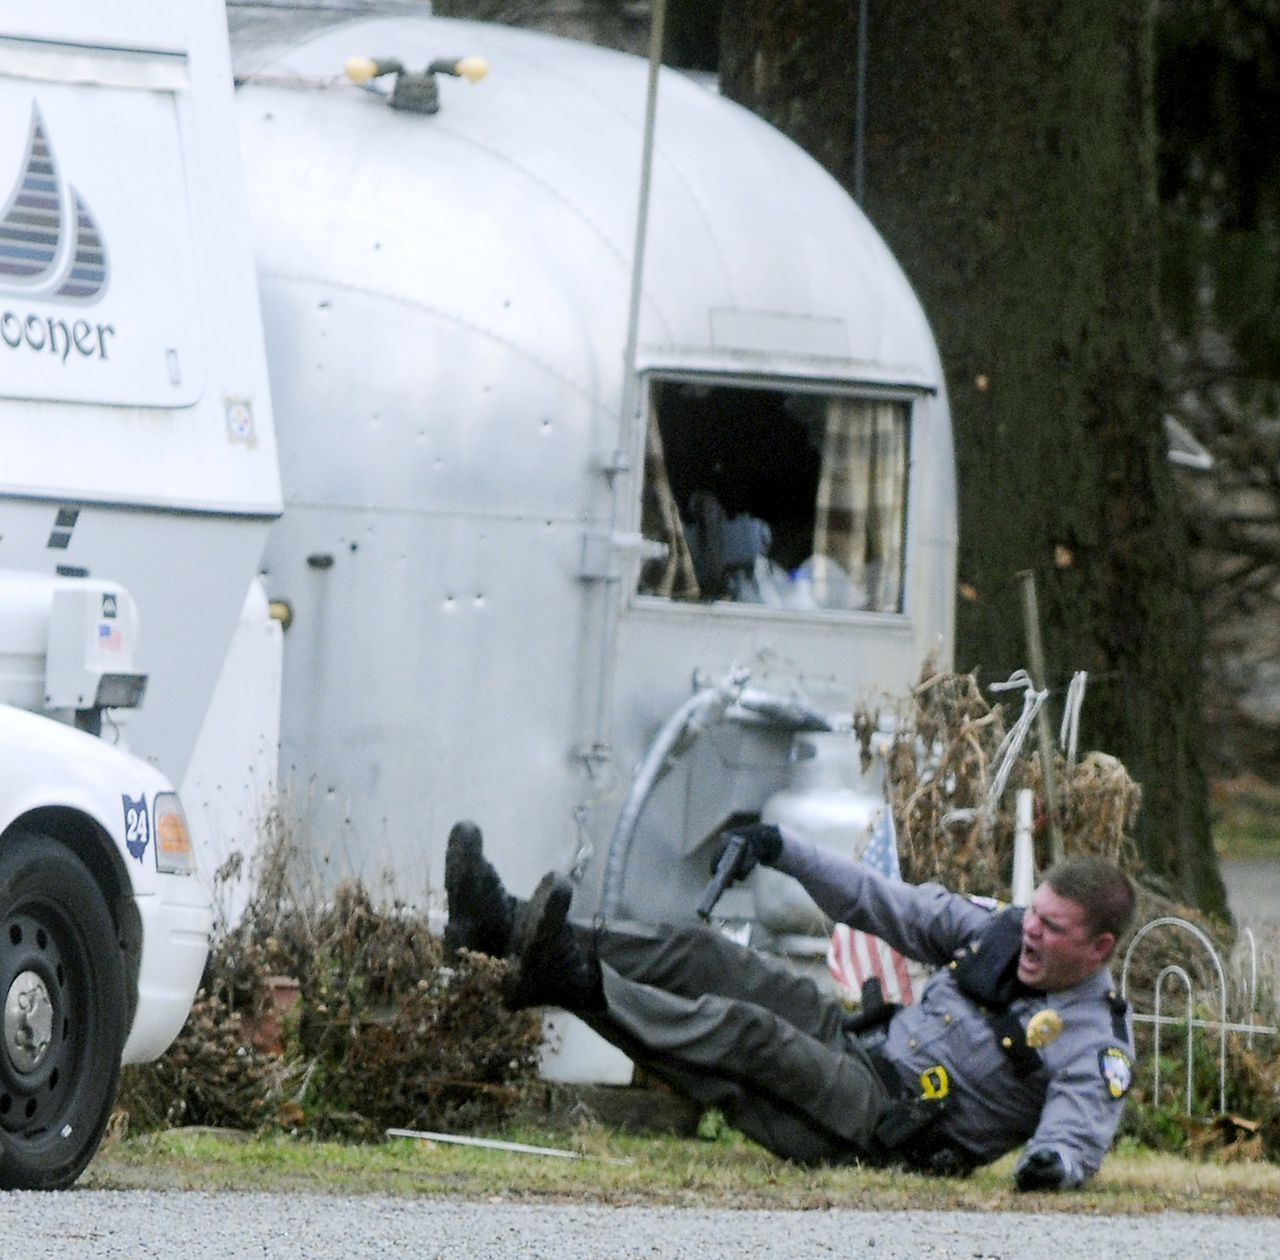 German Township Patrolman Jeremy Blum is wounded in a police shootout with a gunman at Enon Beach trailer park near Enon, Ohio, Saturday, Jan. 1, 2011. Blum was shot in the arm and shoulder, and taken to Miami Valley Hospital, where he is in stable condition, according to German Township Police Chief William Dickerson, as reported by the Springfield News-Sun. (AP Photo/Springfield News-Sun, Marshall Gorby)